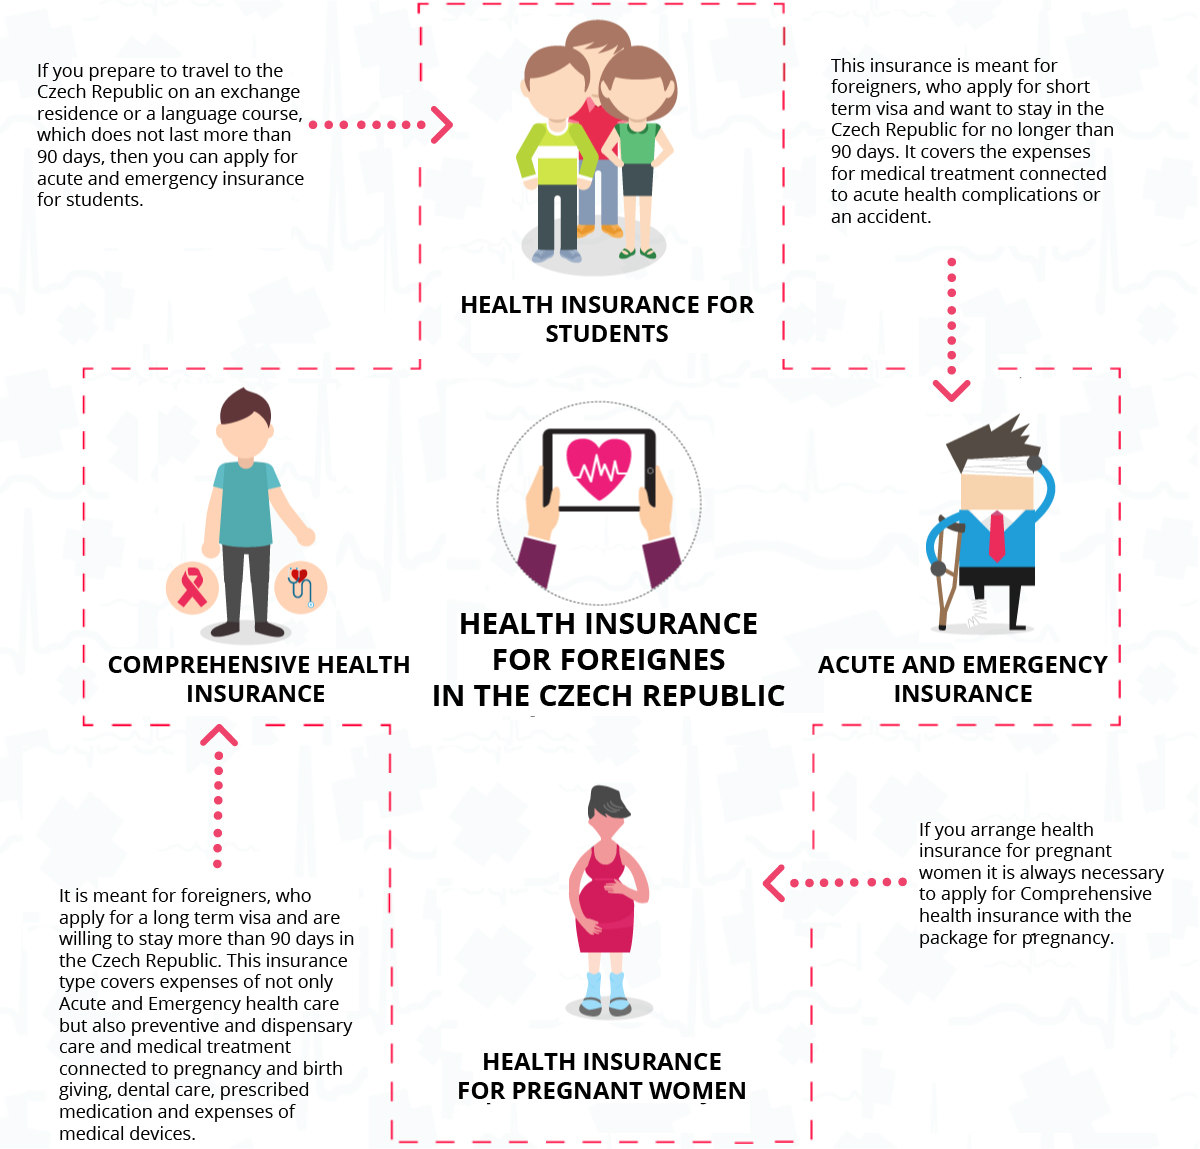 health insurance for foreigners in the czech republic